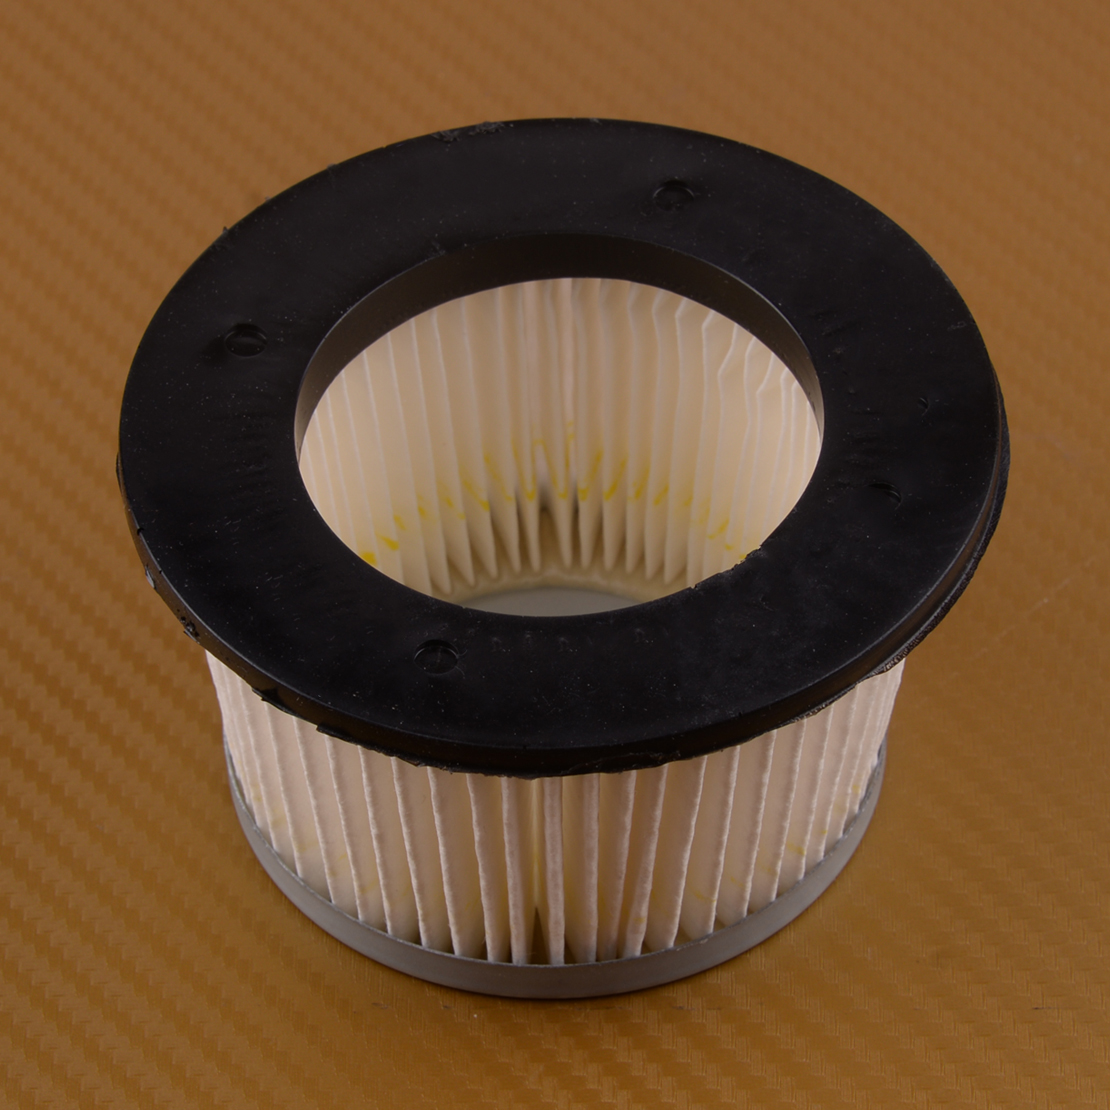 LETAOSK High Performance Air Filter TC-30727 AM30900 488619 488619-R1 Fit For TECUMSEH H30 H70 HH60 HH70 V70 Engine